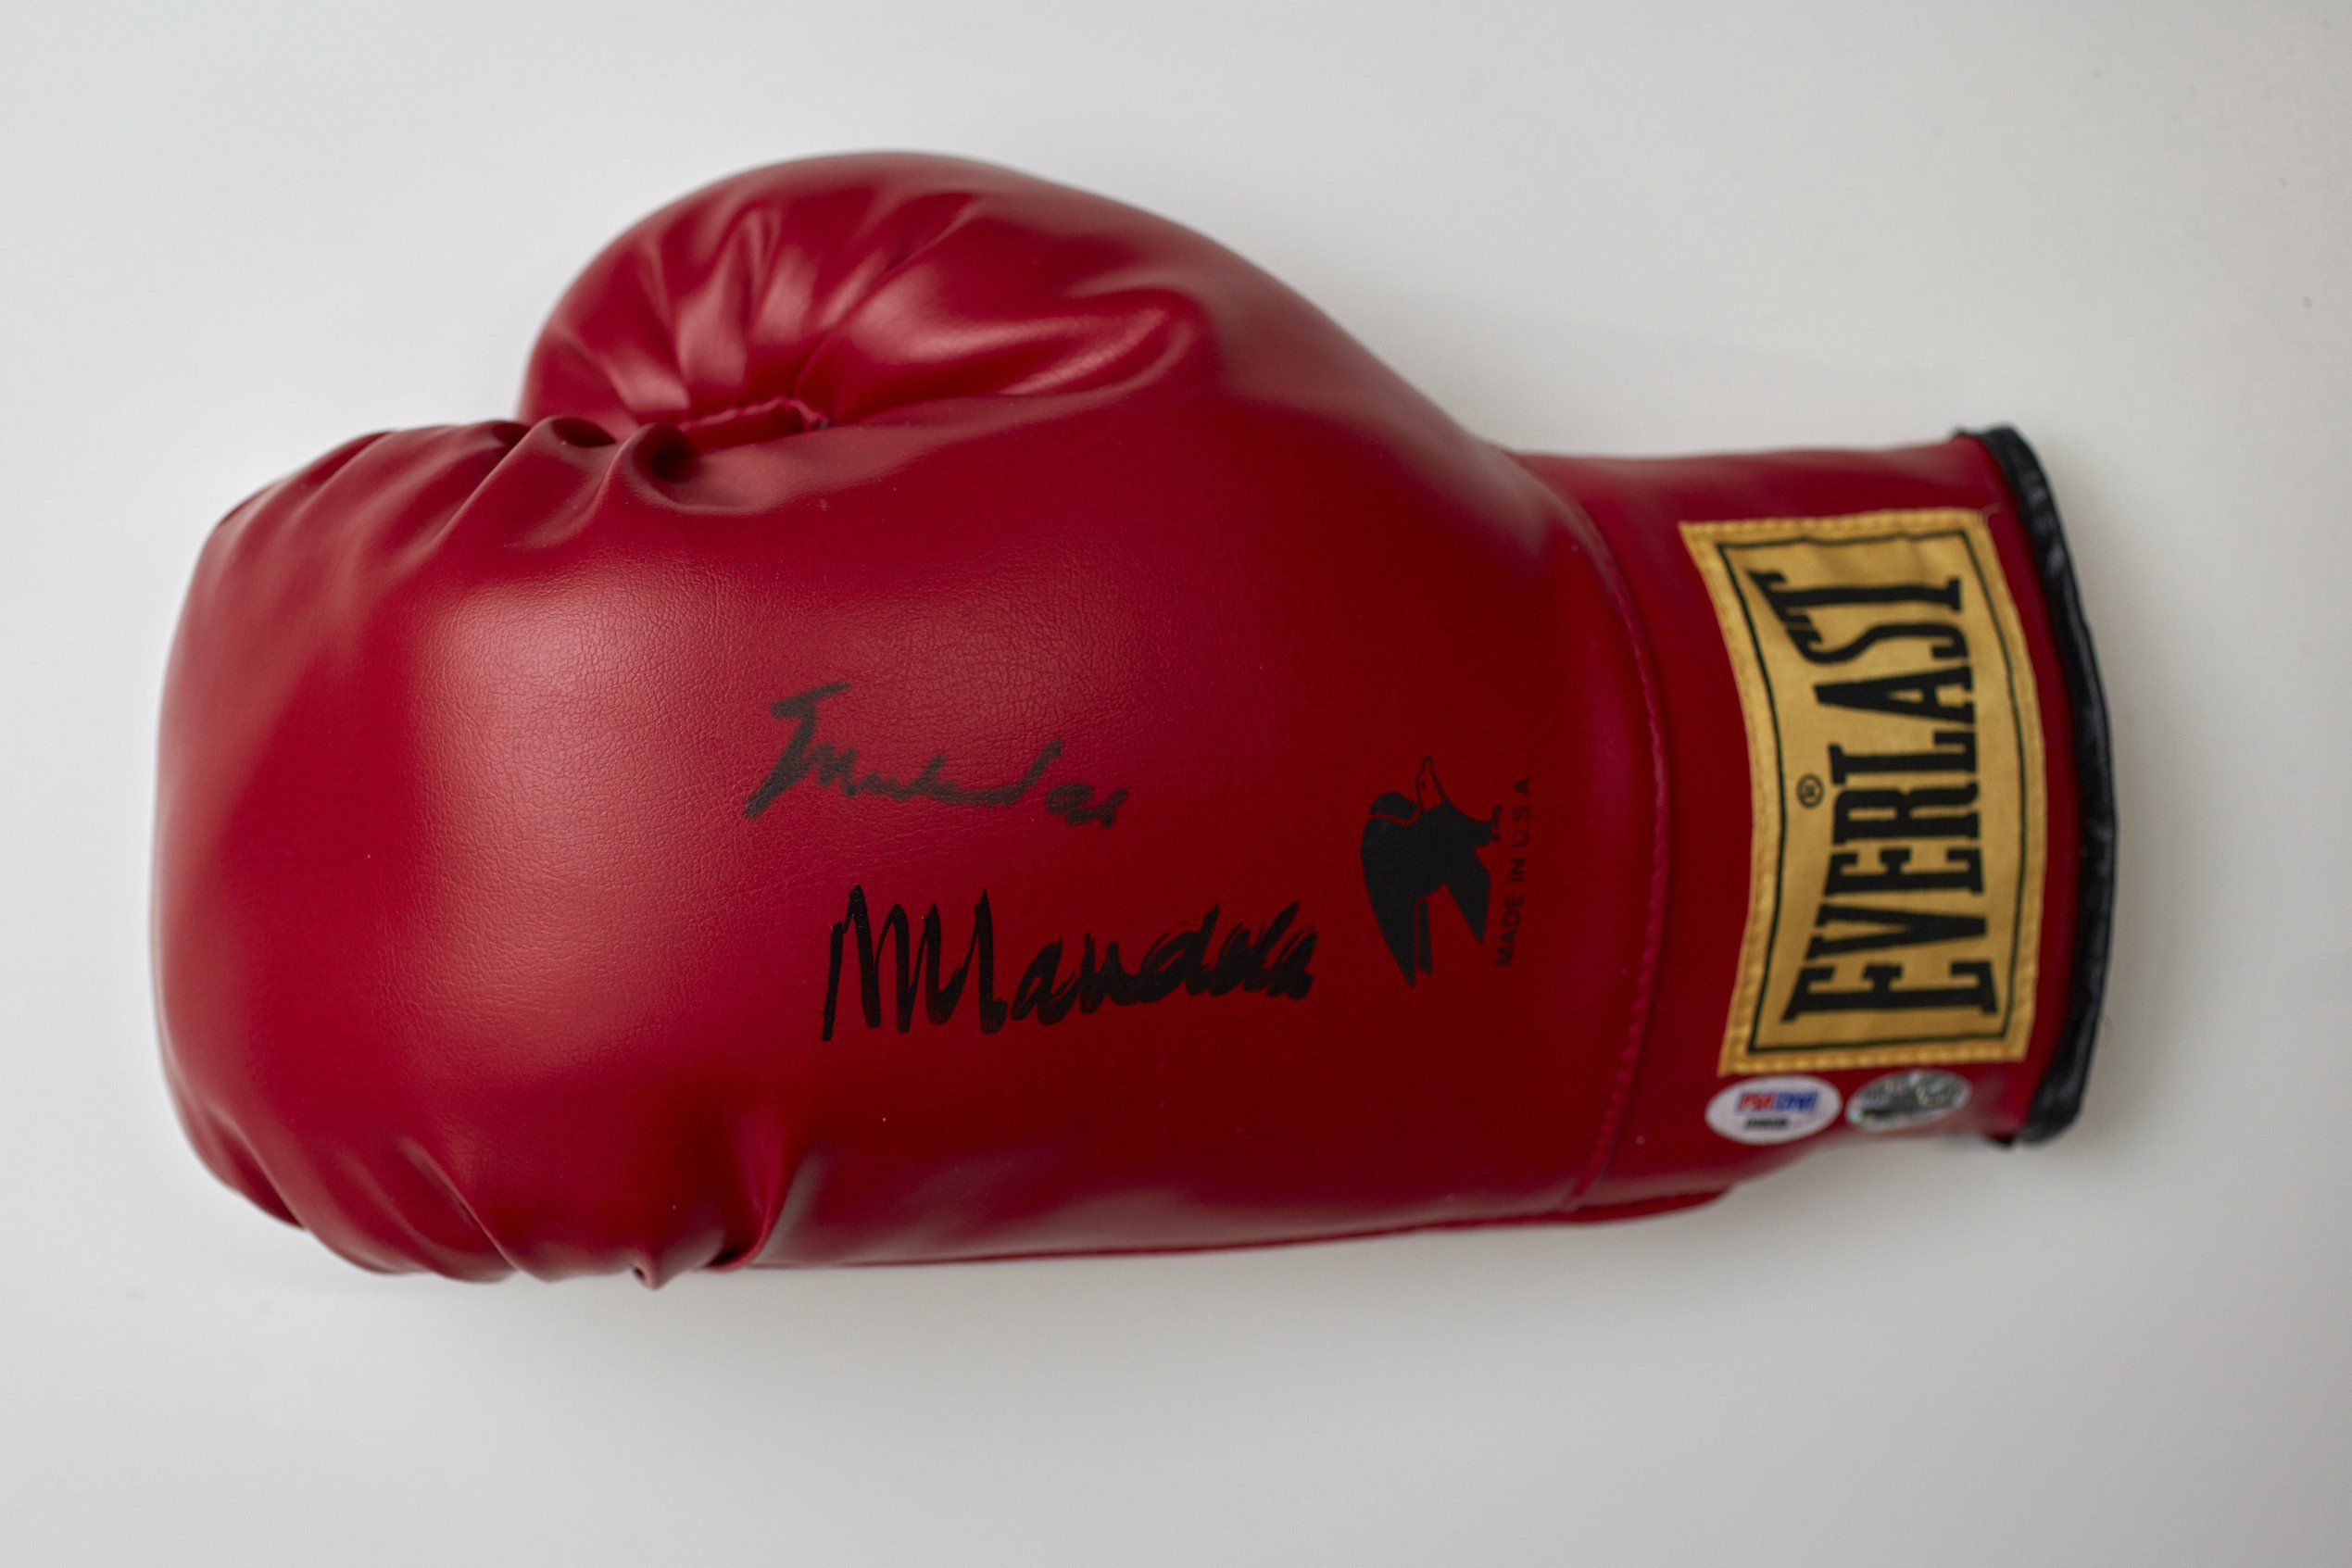 Boxing Glove - Signed by Muhammad Ali Nelson Mandela Foundation photo credit Jon Augier, Museums Victoria.jpg